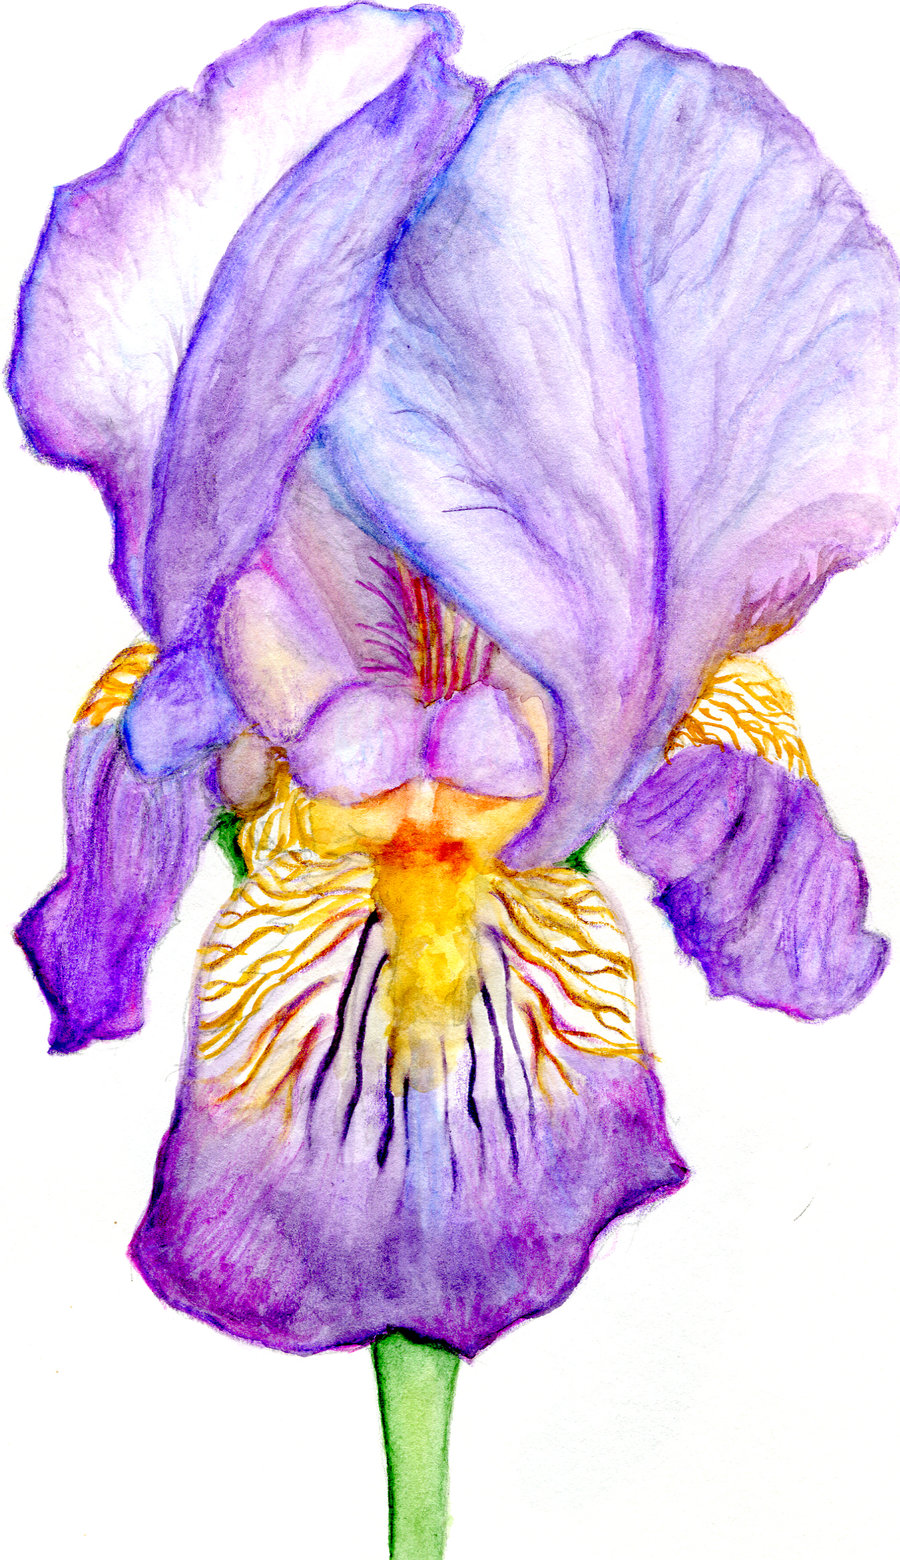 900x1560 Iris Drawing Purple Iris By Midnightpeace Traditional Art